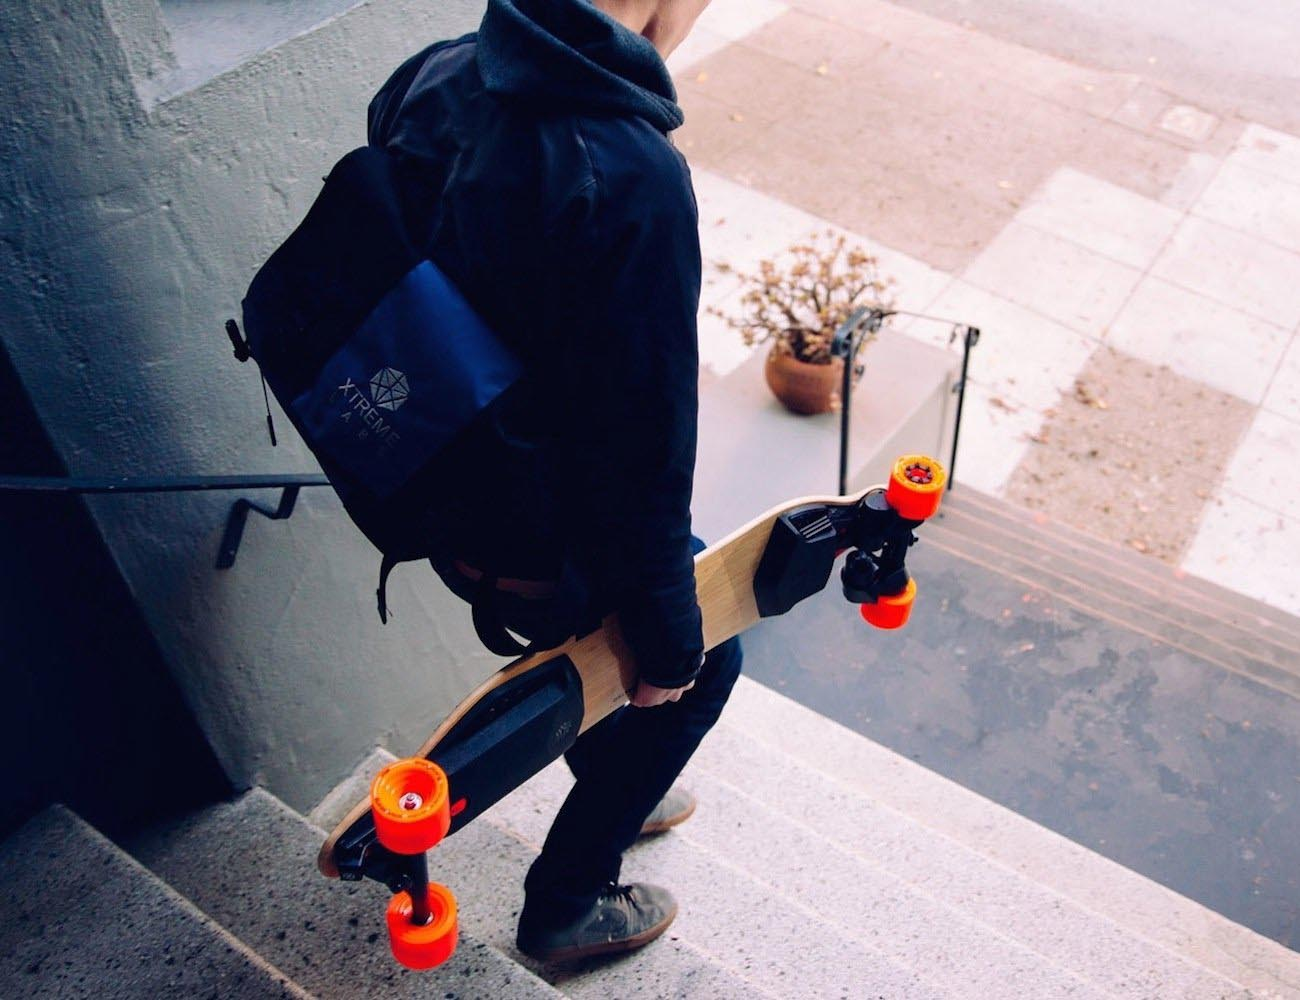 Boosted Dual+ 2000W Electric Skateboard – Advanced Electric Vehicle Technology